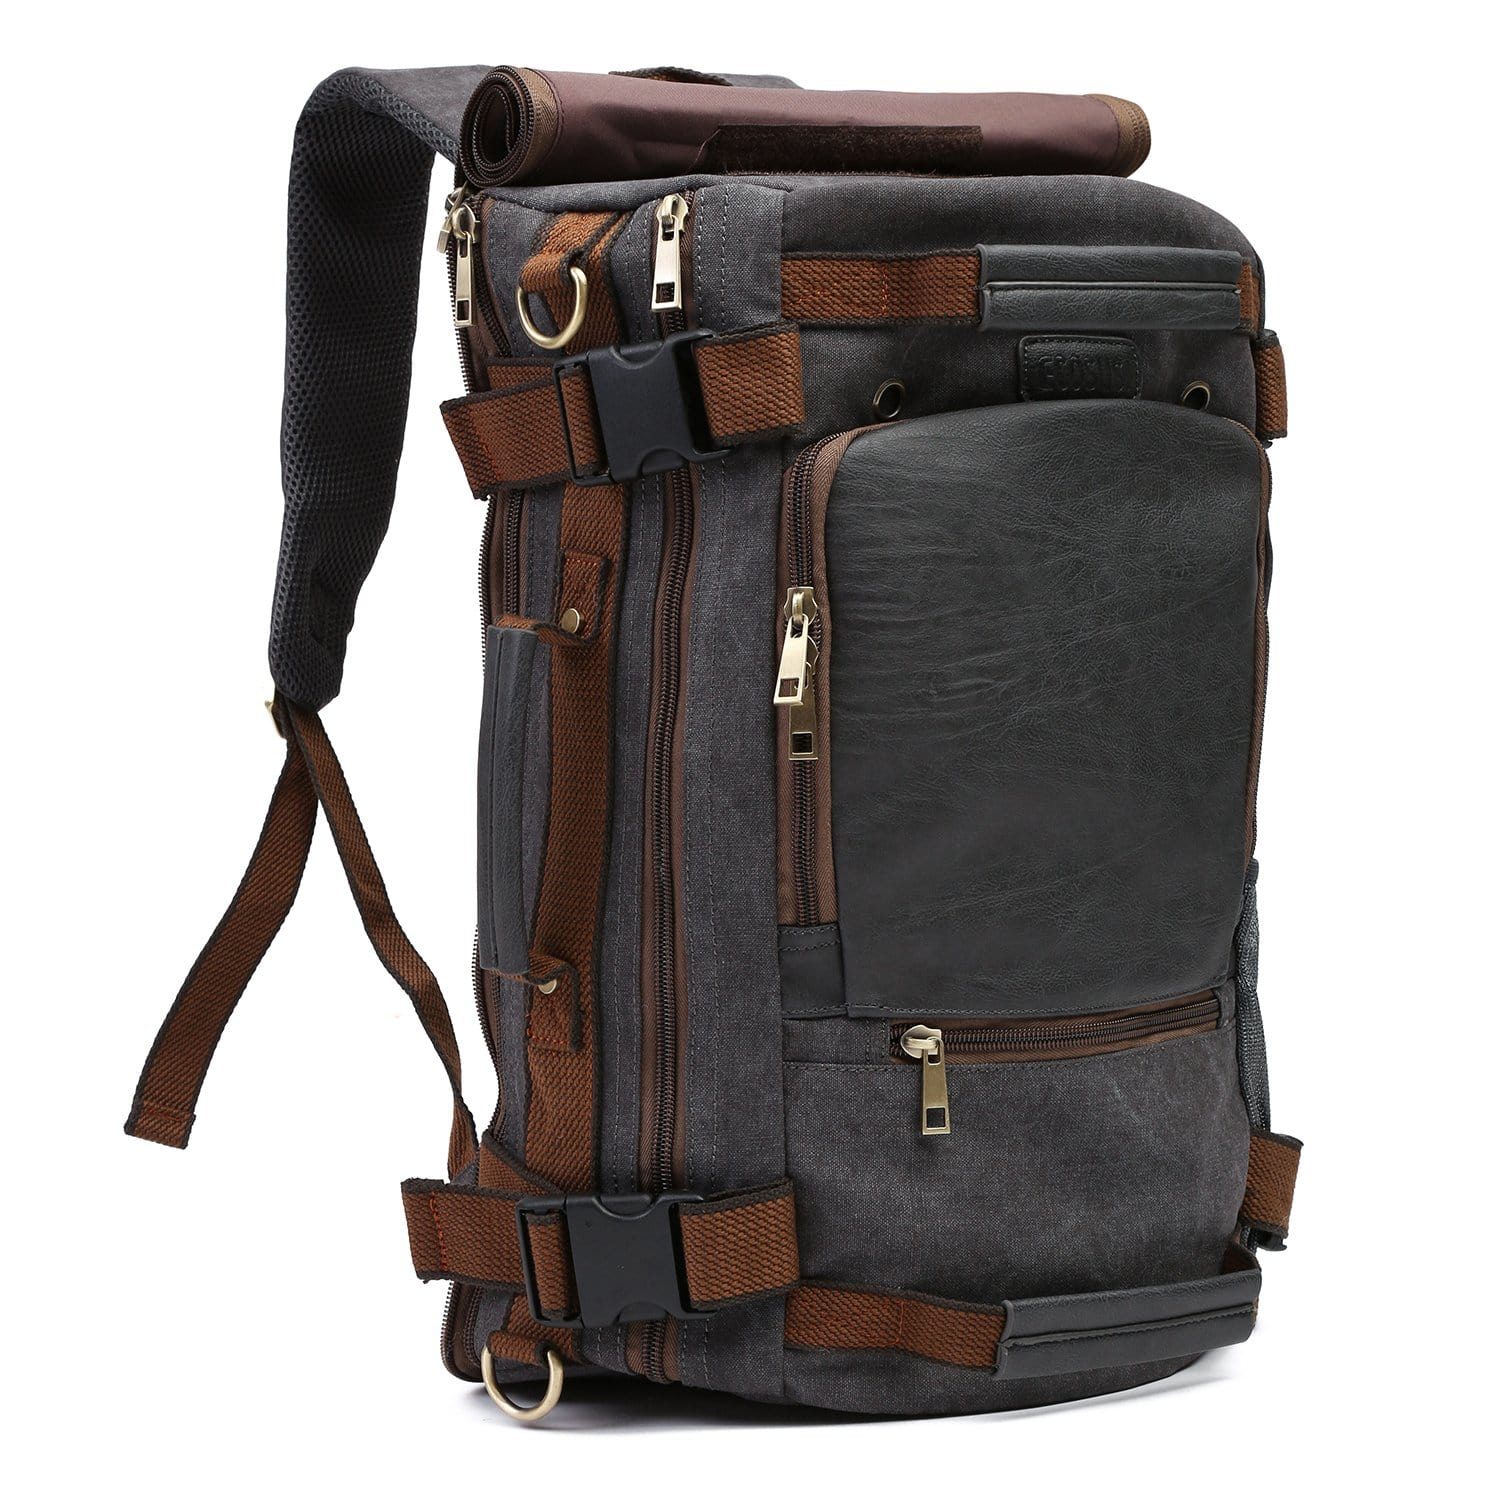 201f78ba2e Vintage Canvas Tactical Backpack Multifunctional Shoulder Straps Travel  Duffel Bag Rucksack Hiking Bag